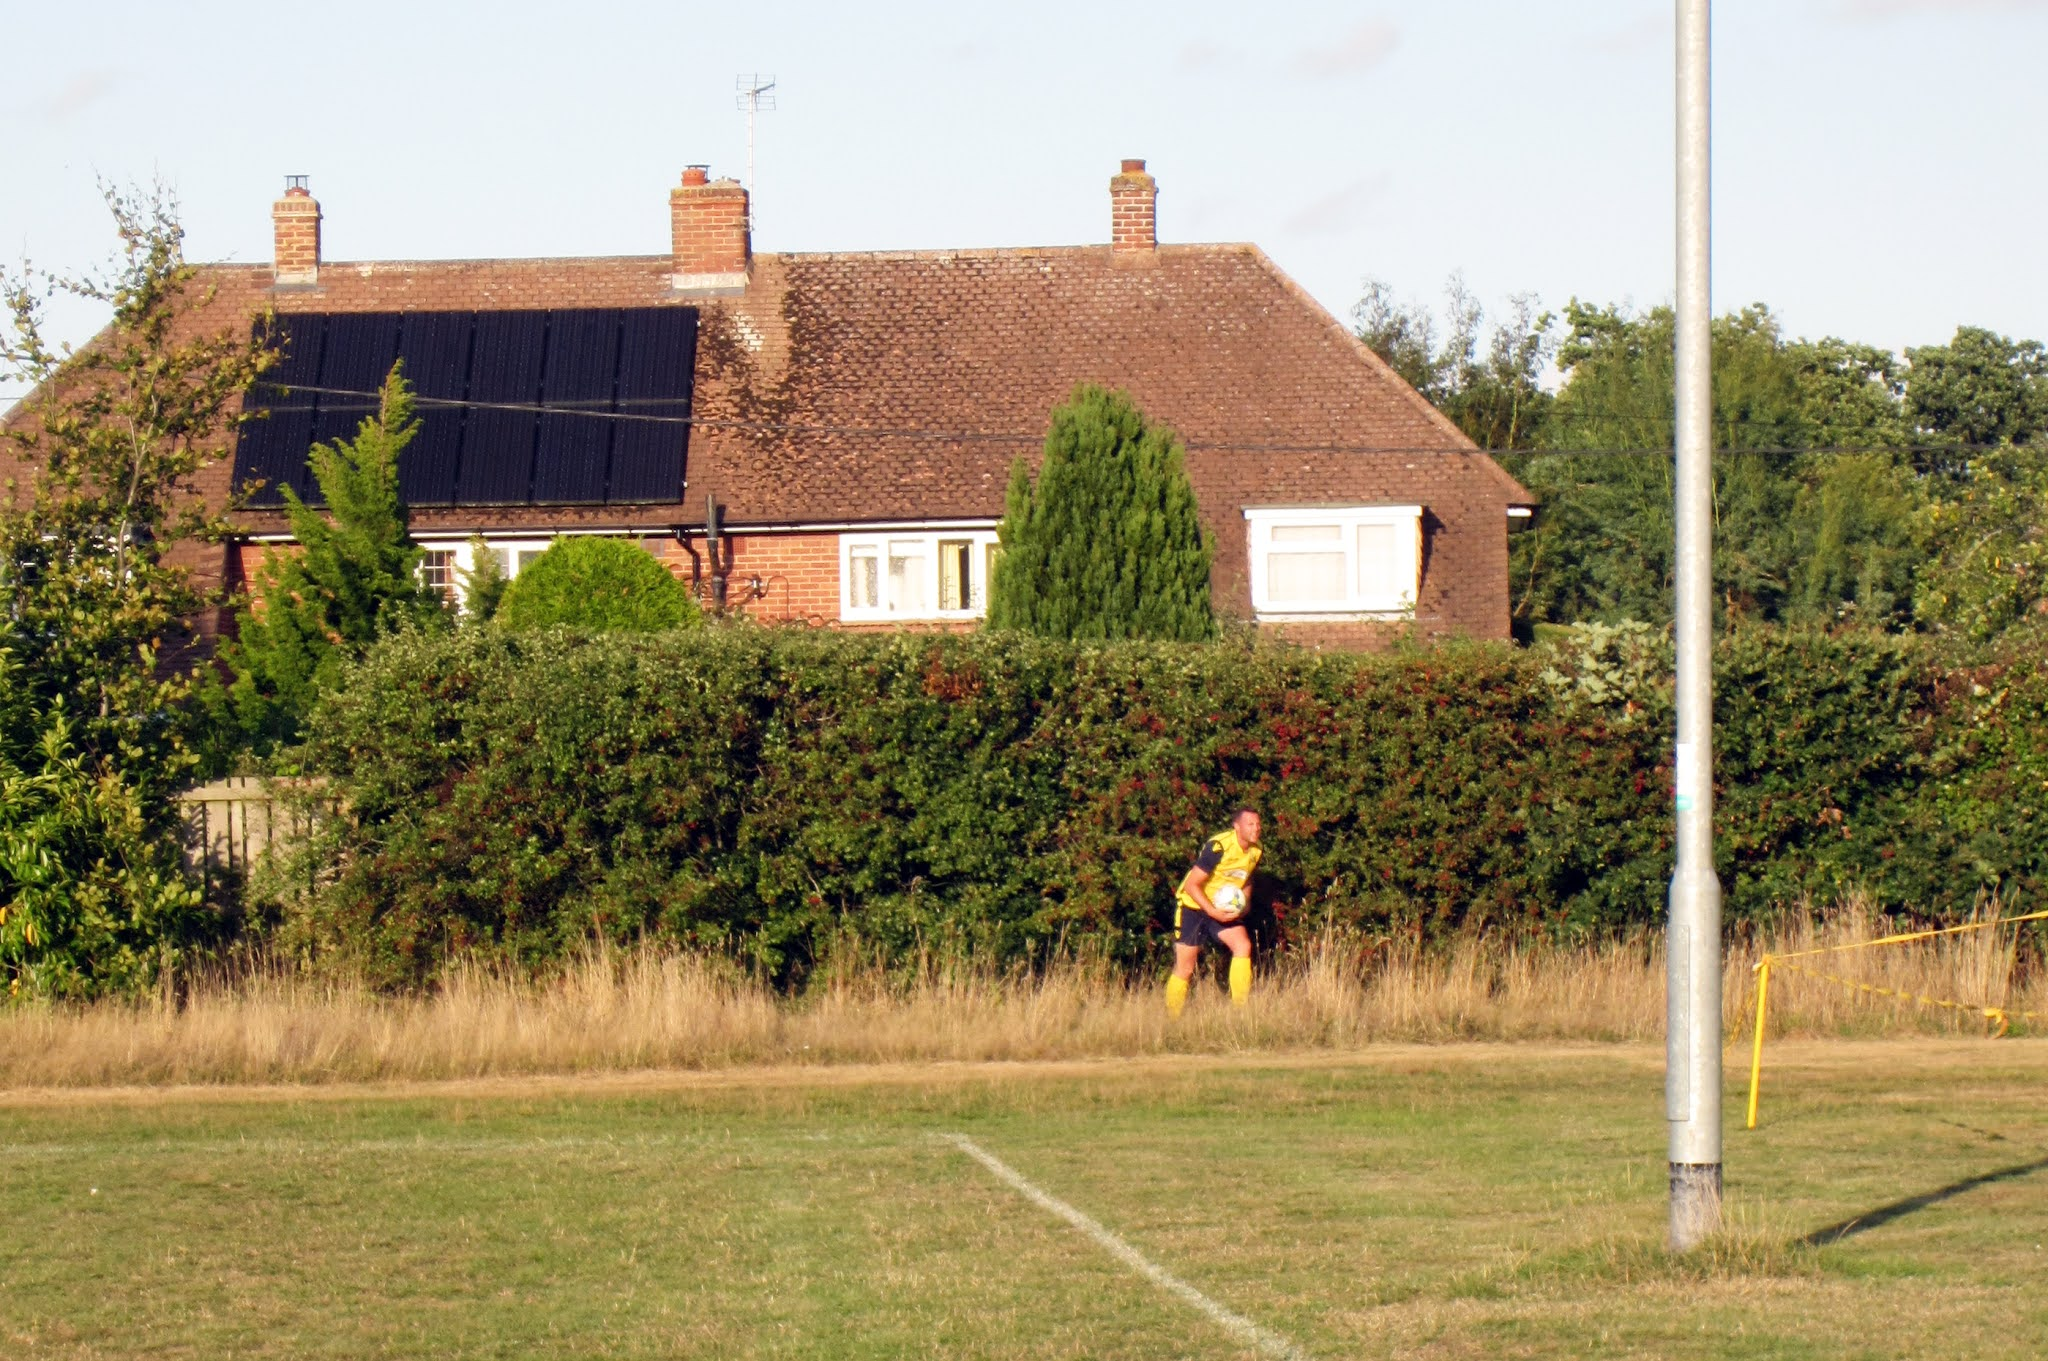 A Mortimer FC player retrieves the ball from the hedge